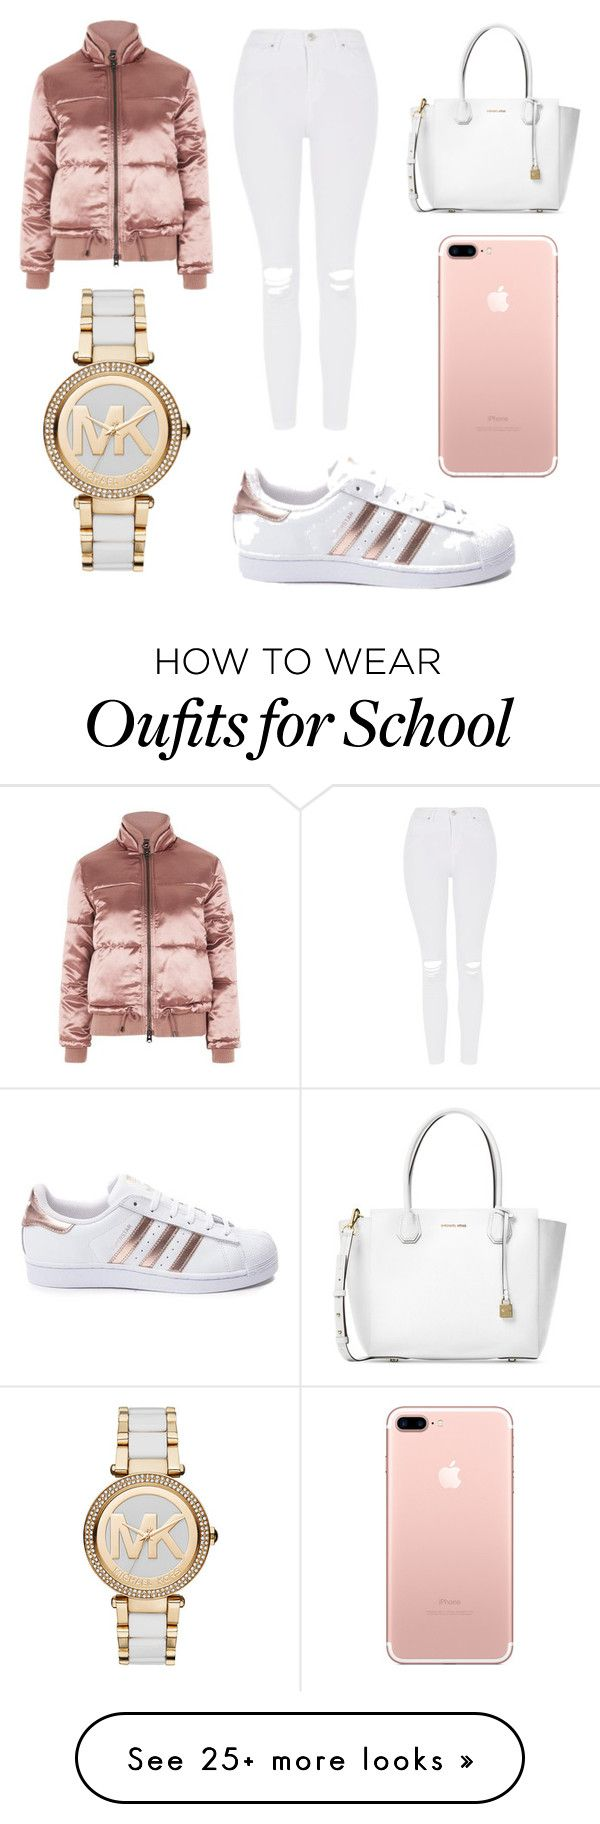 """""""school outfit """" by ashlehhfhbffg on Polyvore featuring Michael Kors, Topshop and adidas"""